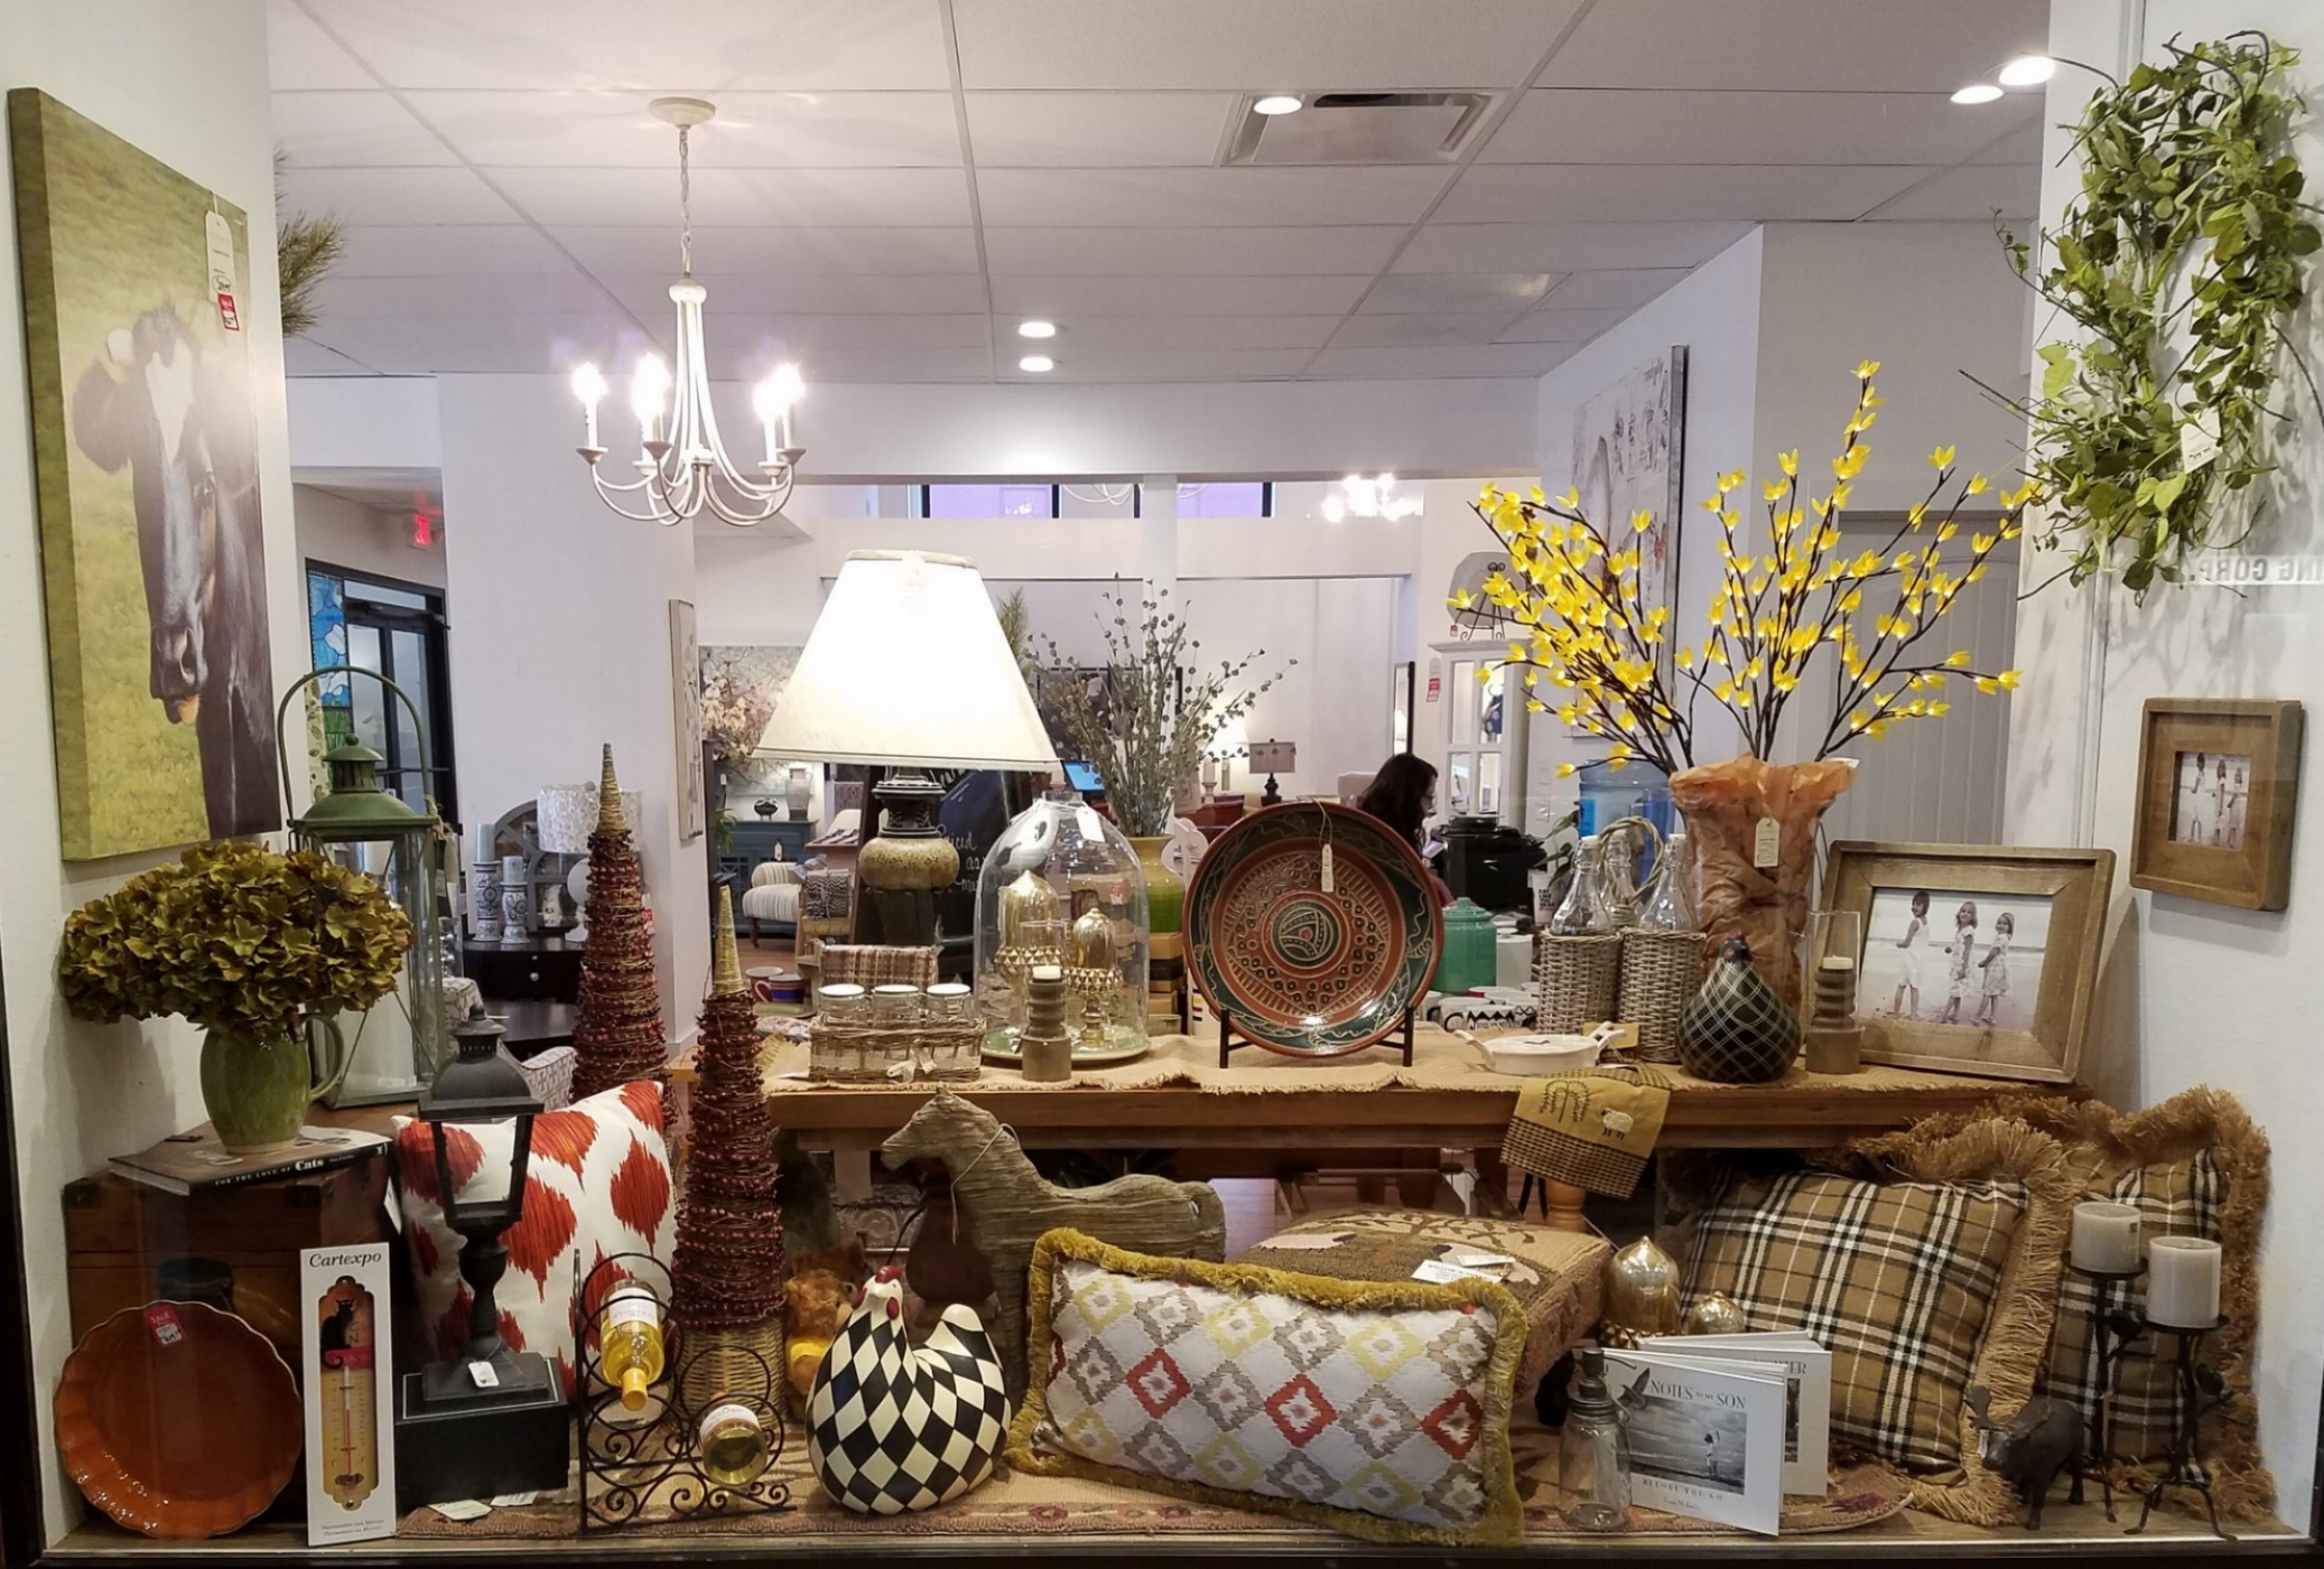 Willow Haven Home Furnishings and Decor 20170125 103433 jpg